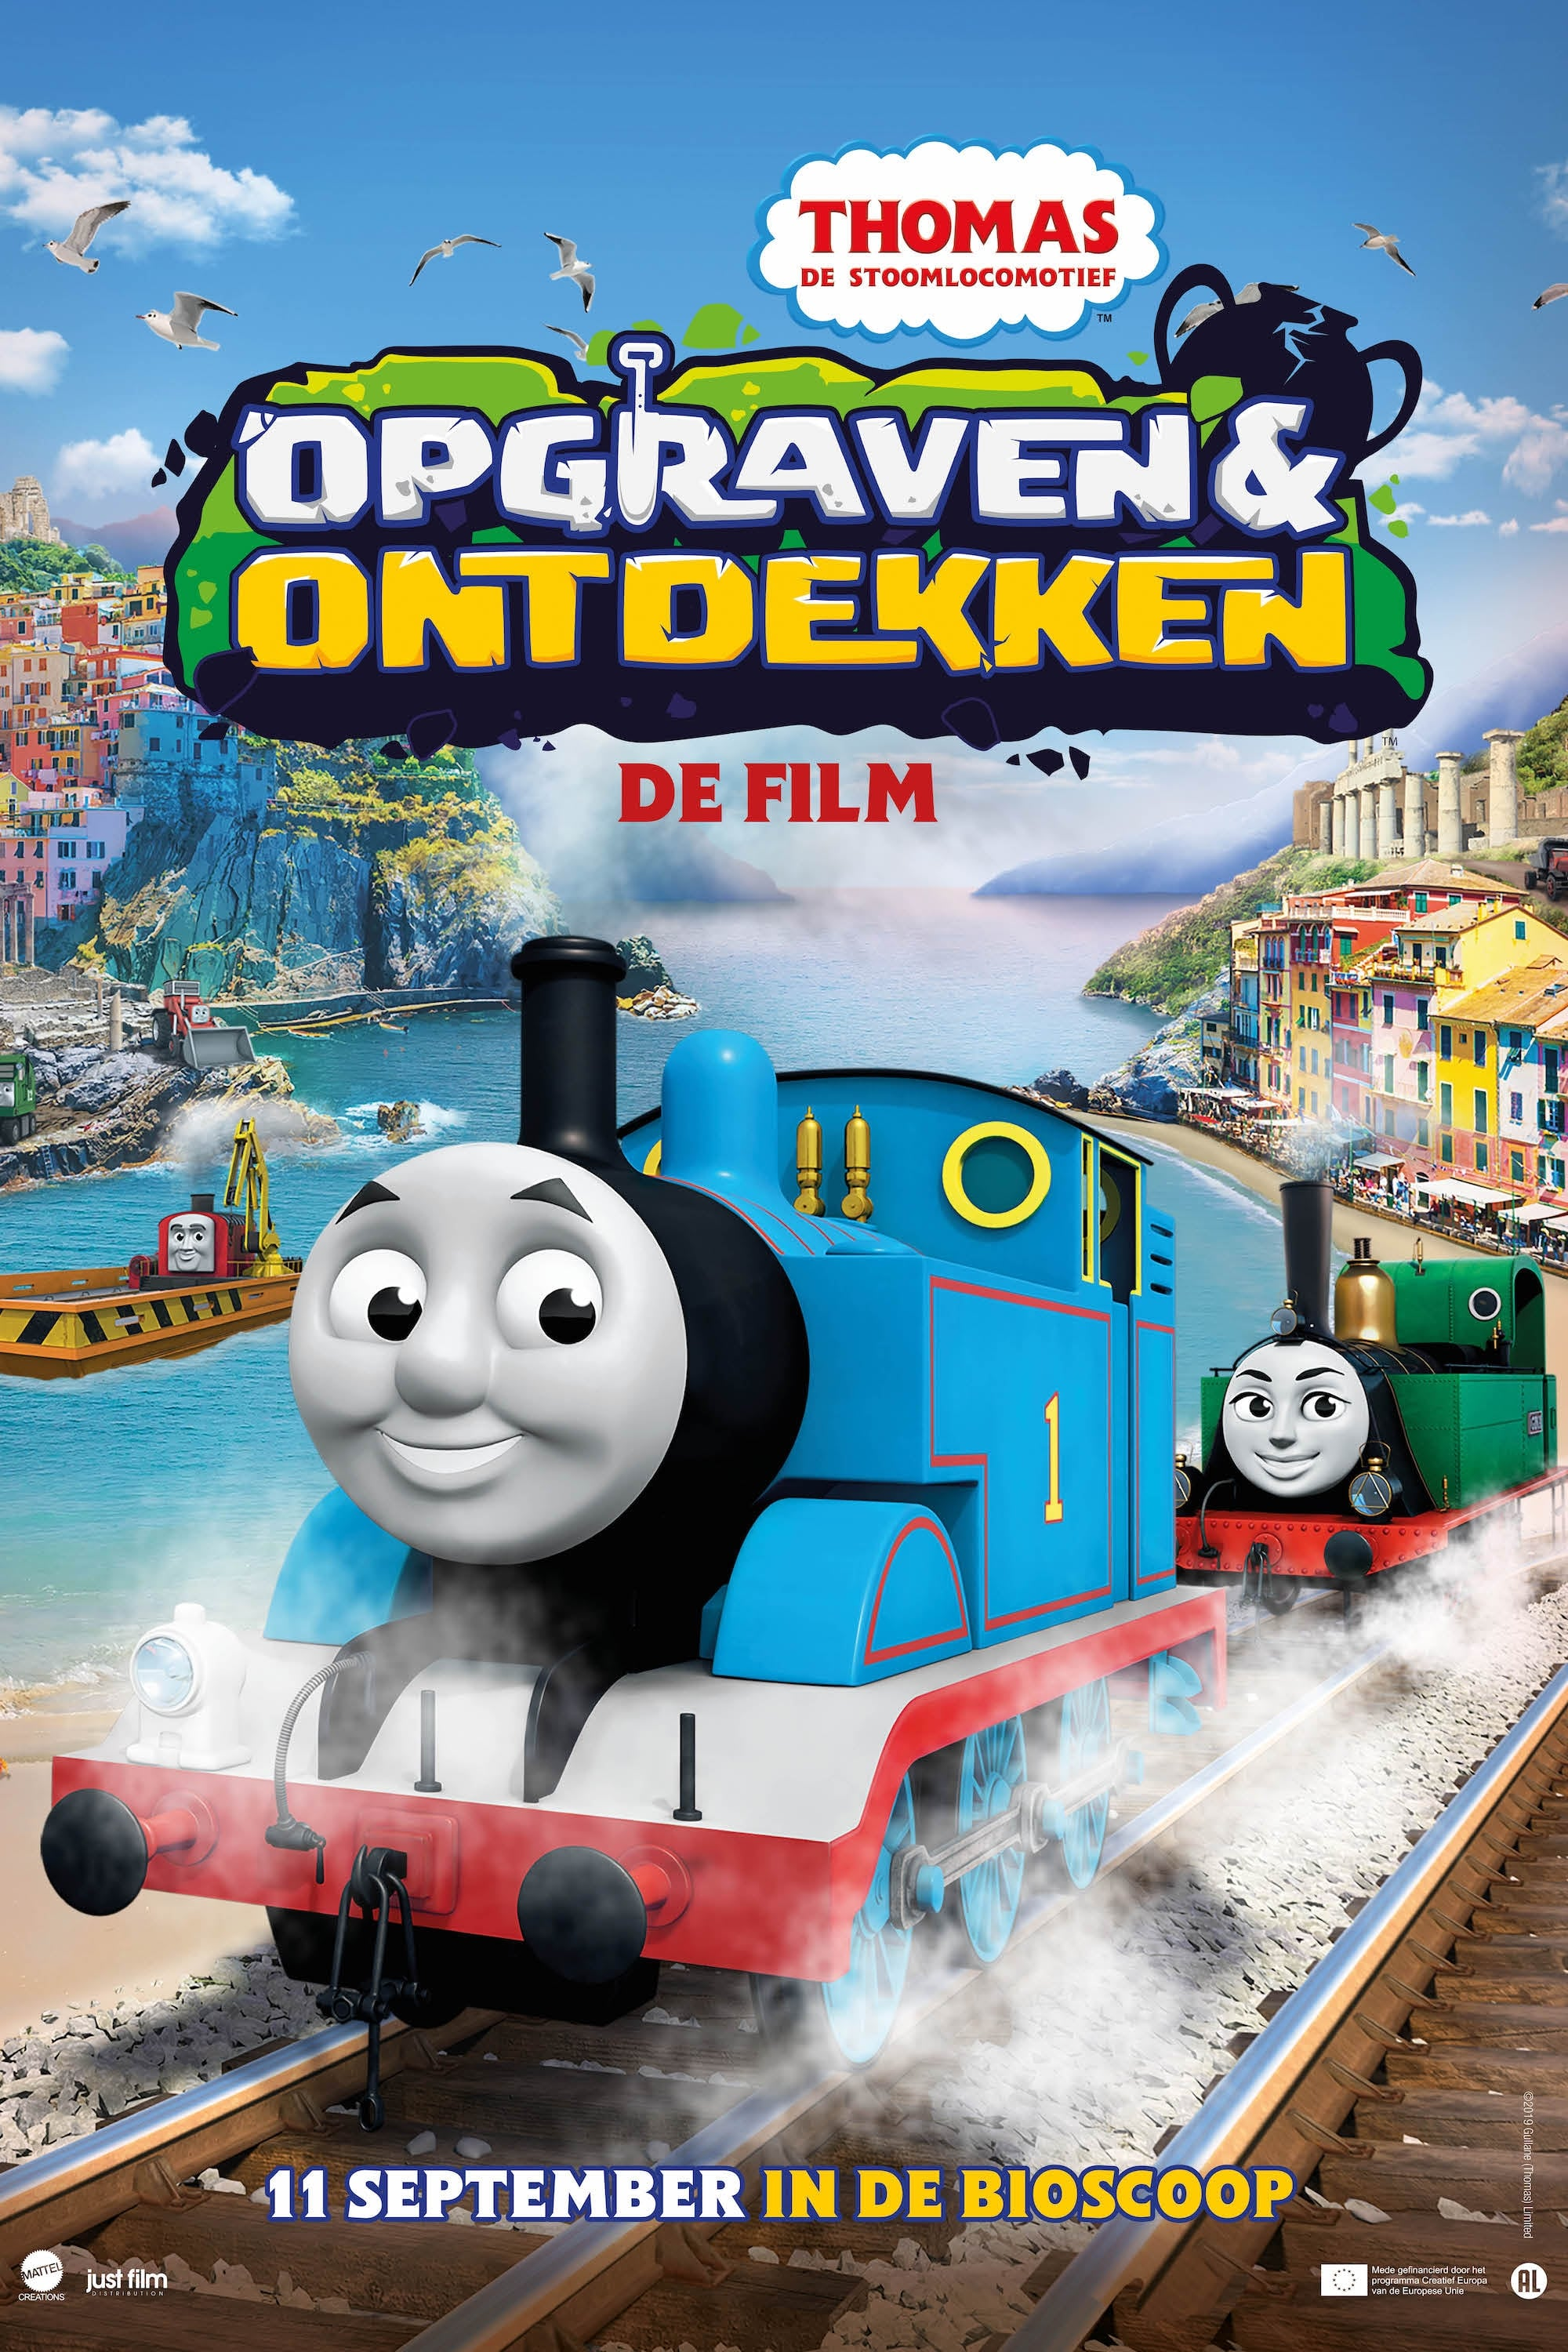 Thomas & Friends: Digs & Discoveries (2019)